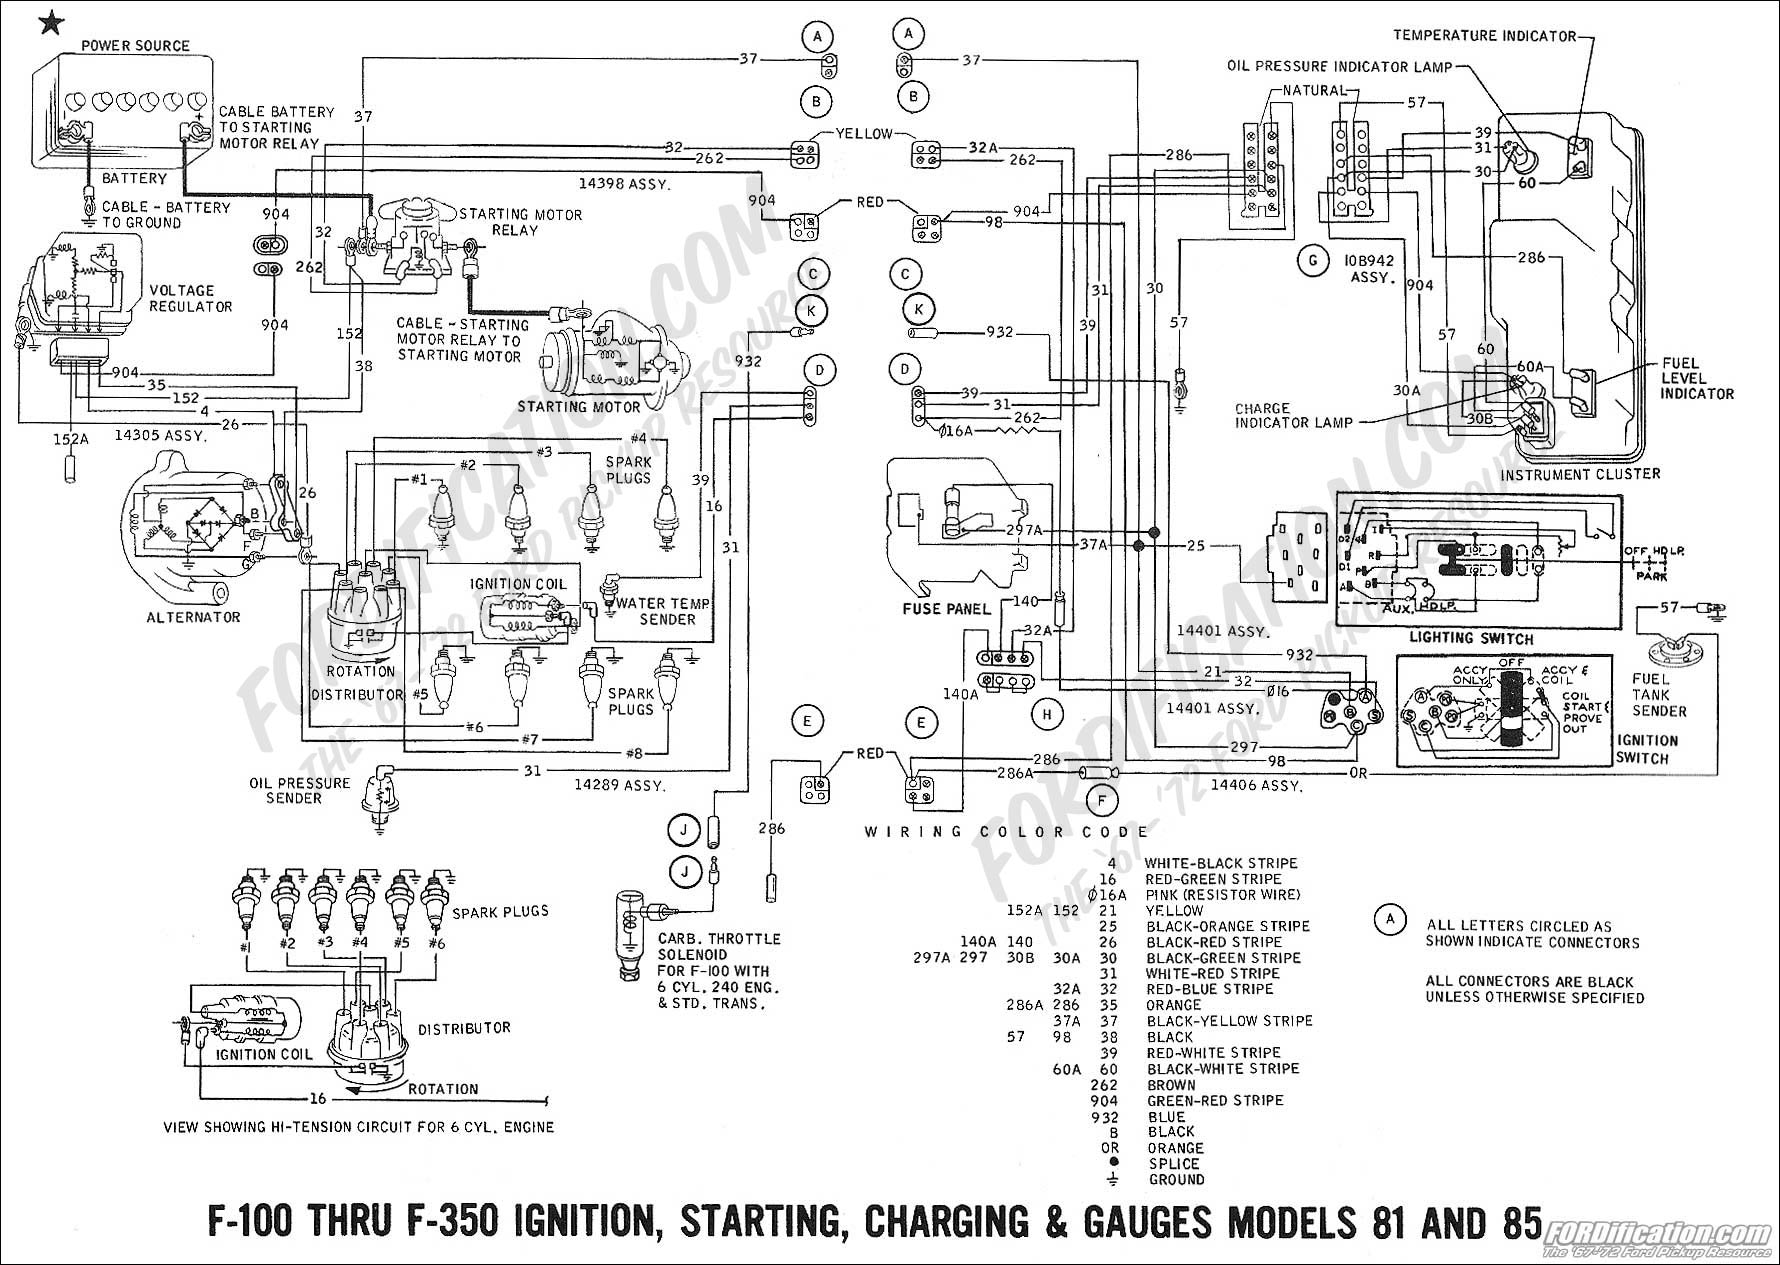 relay pr380 schematic wiring diagram c39 2014 ford f 150 wire schematics wiring library  c39 2014 ford f 150 wire schematics